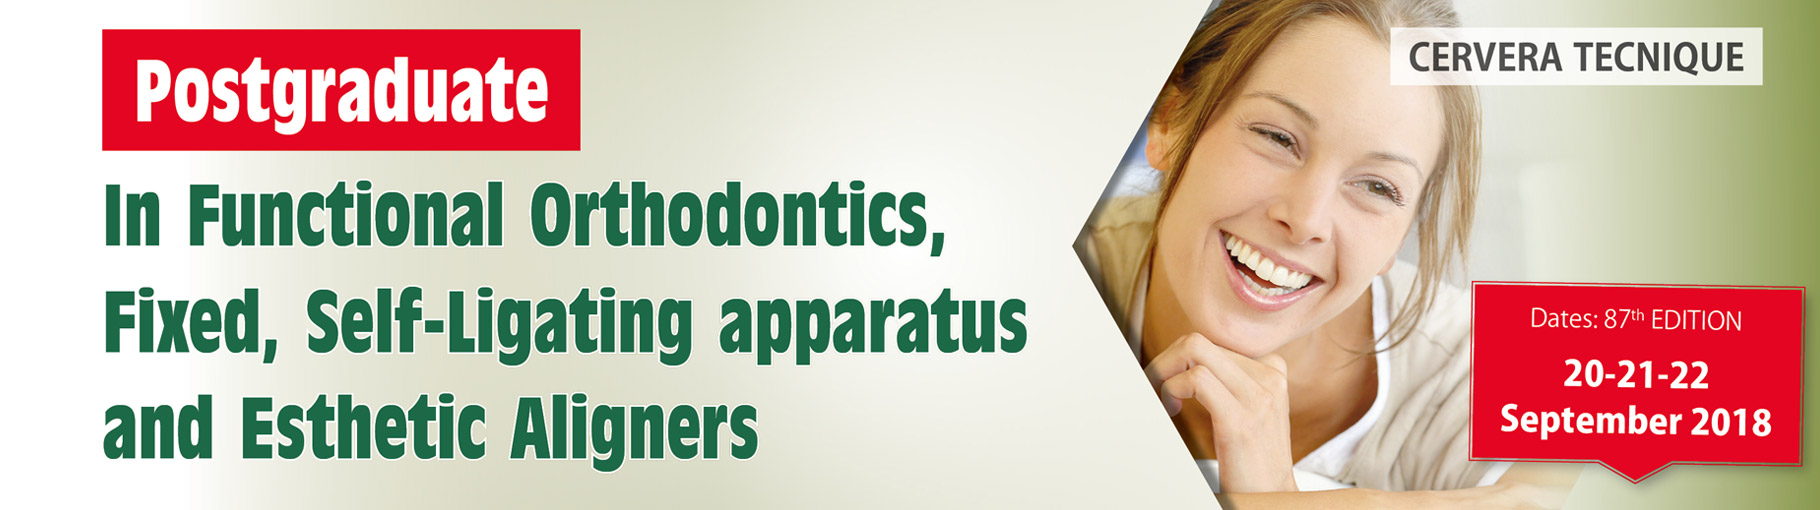 orthodontics-postgraduate